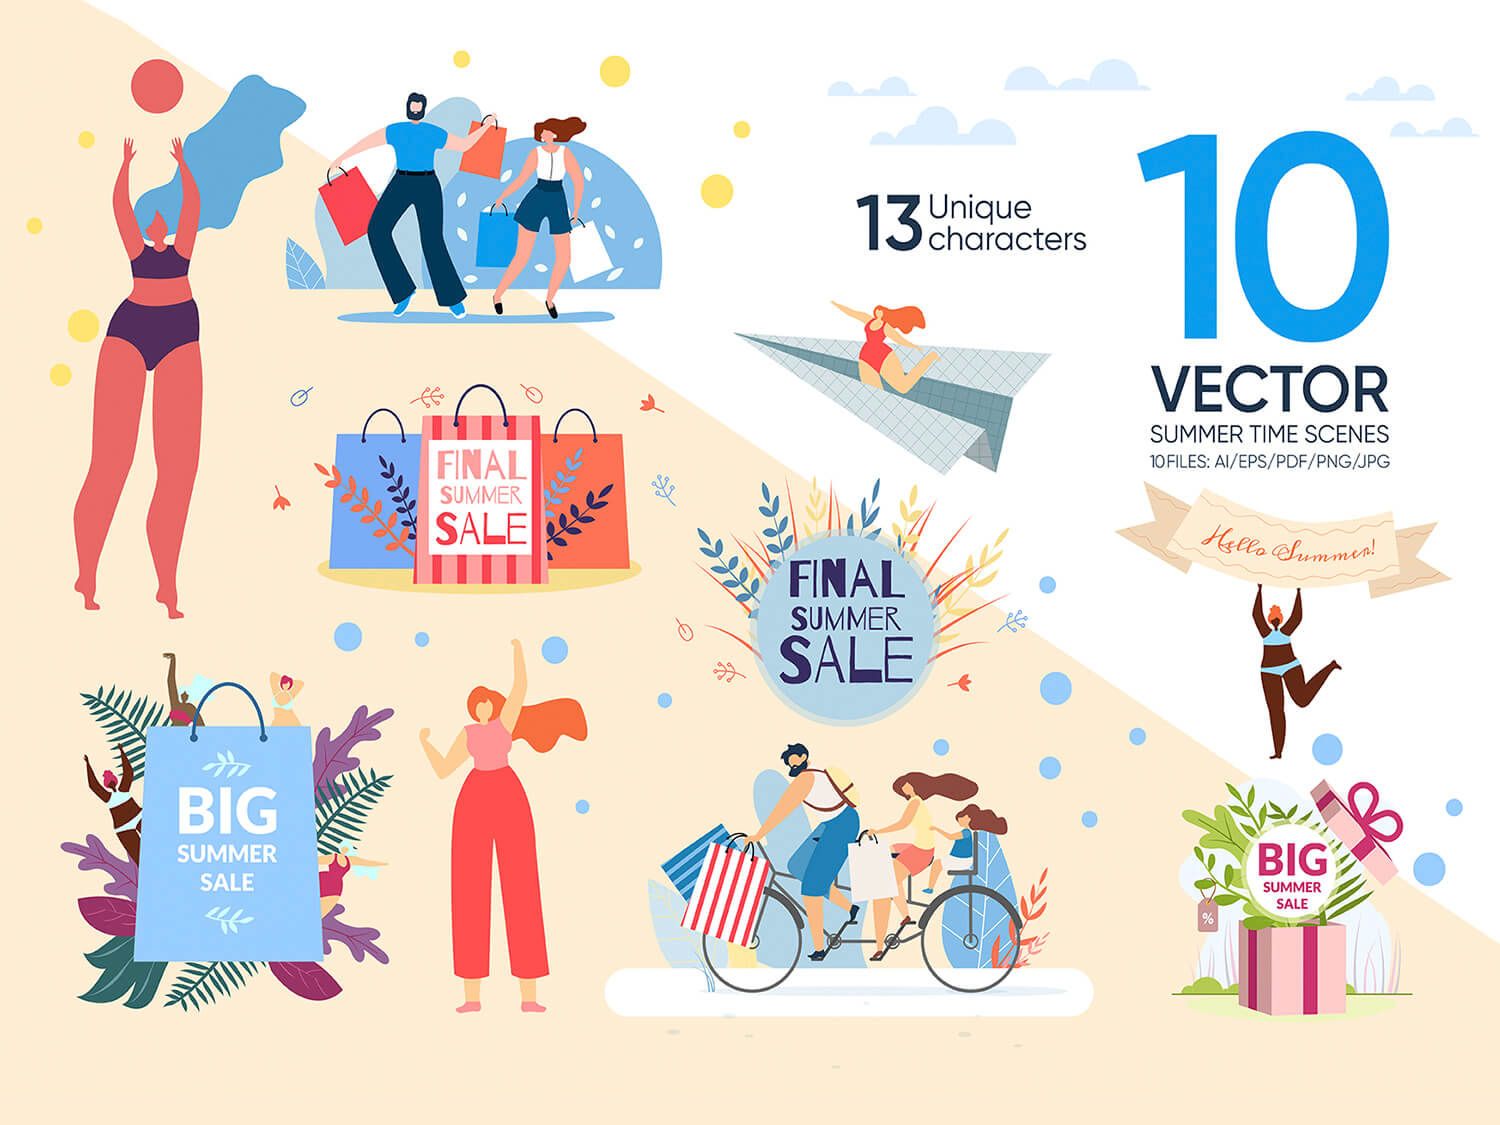 24-in-1 Flaticons Bundle: 10 Summer Time Vector Scenes